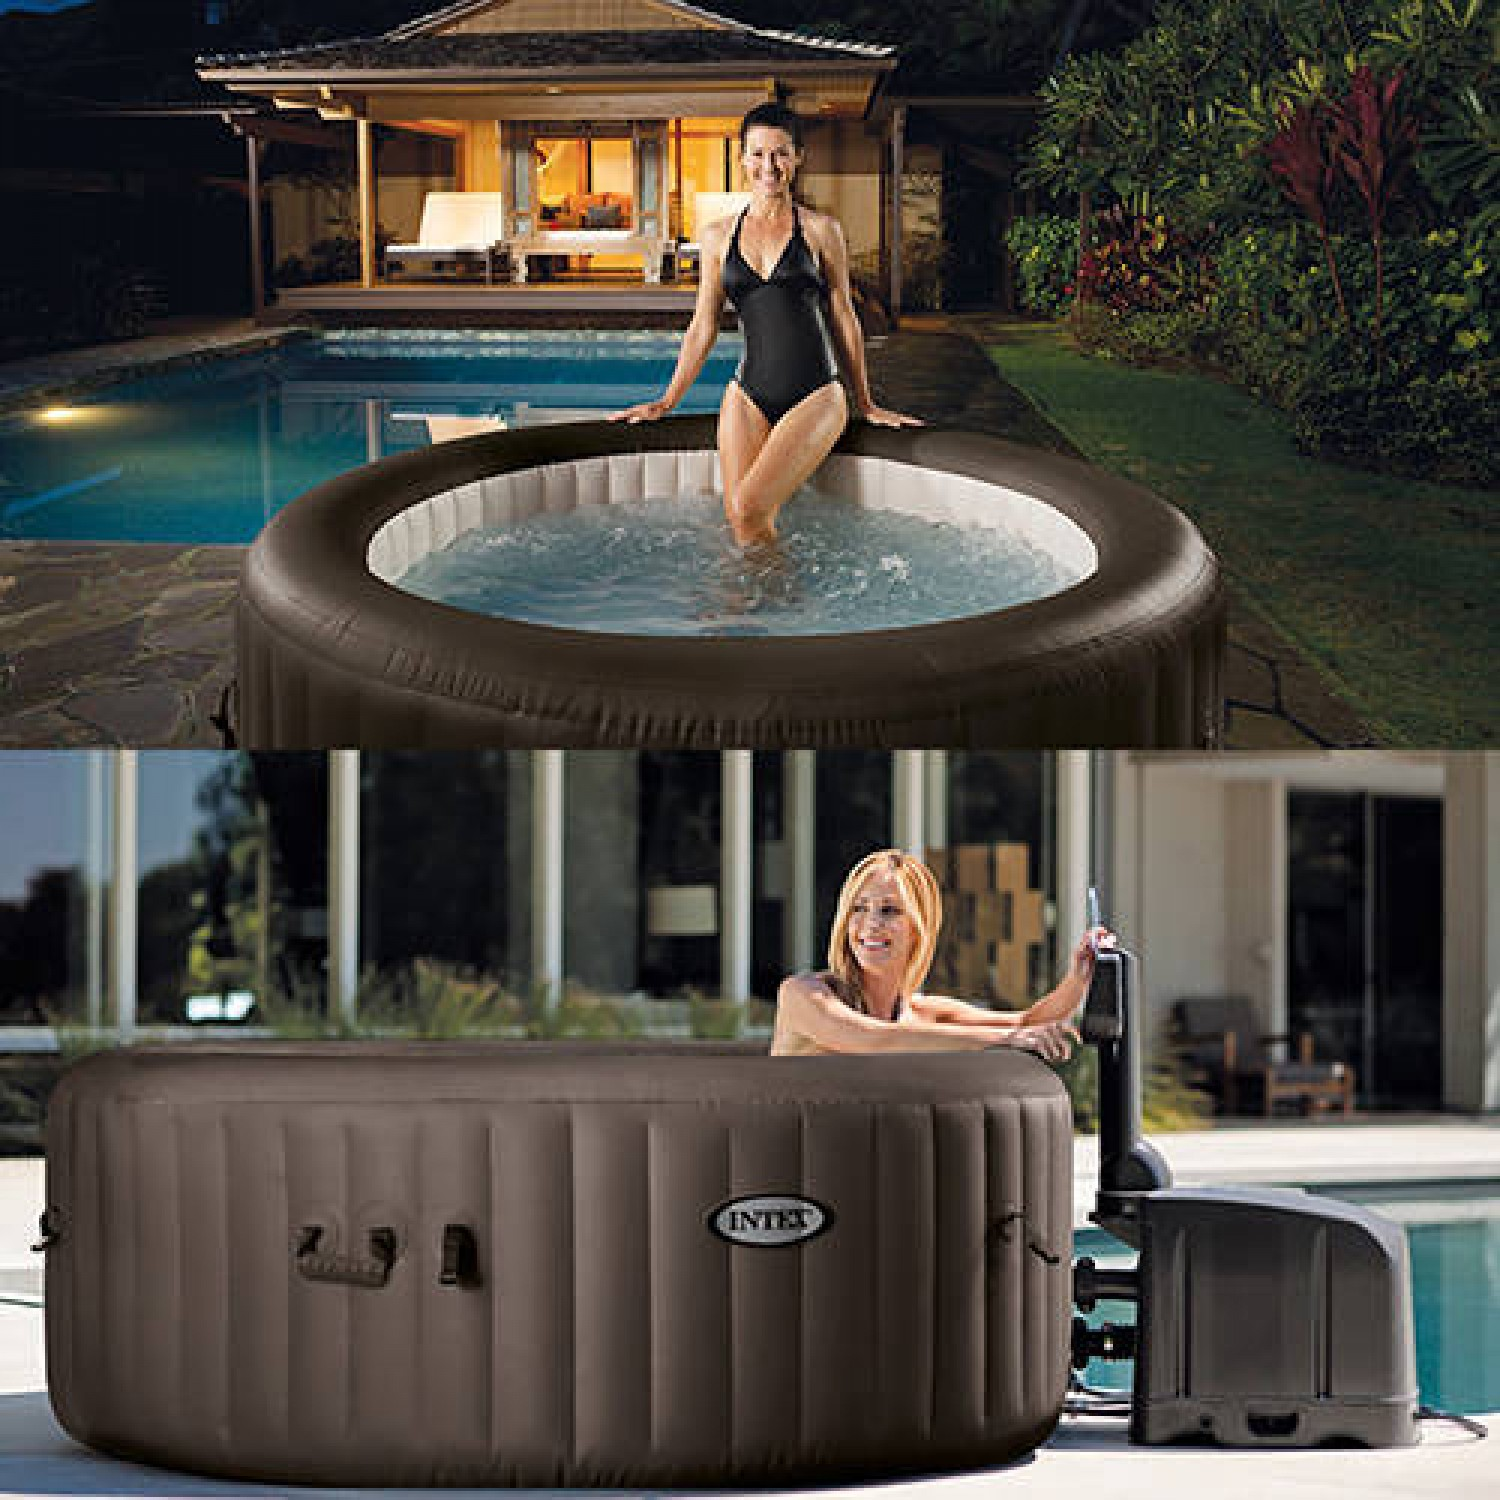 Hivernage Spa Intex Great Intex Spa Gonflable Purespa Rond Bulles